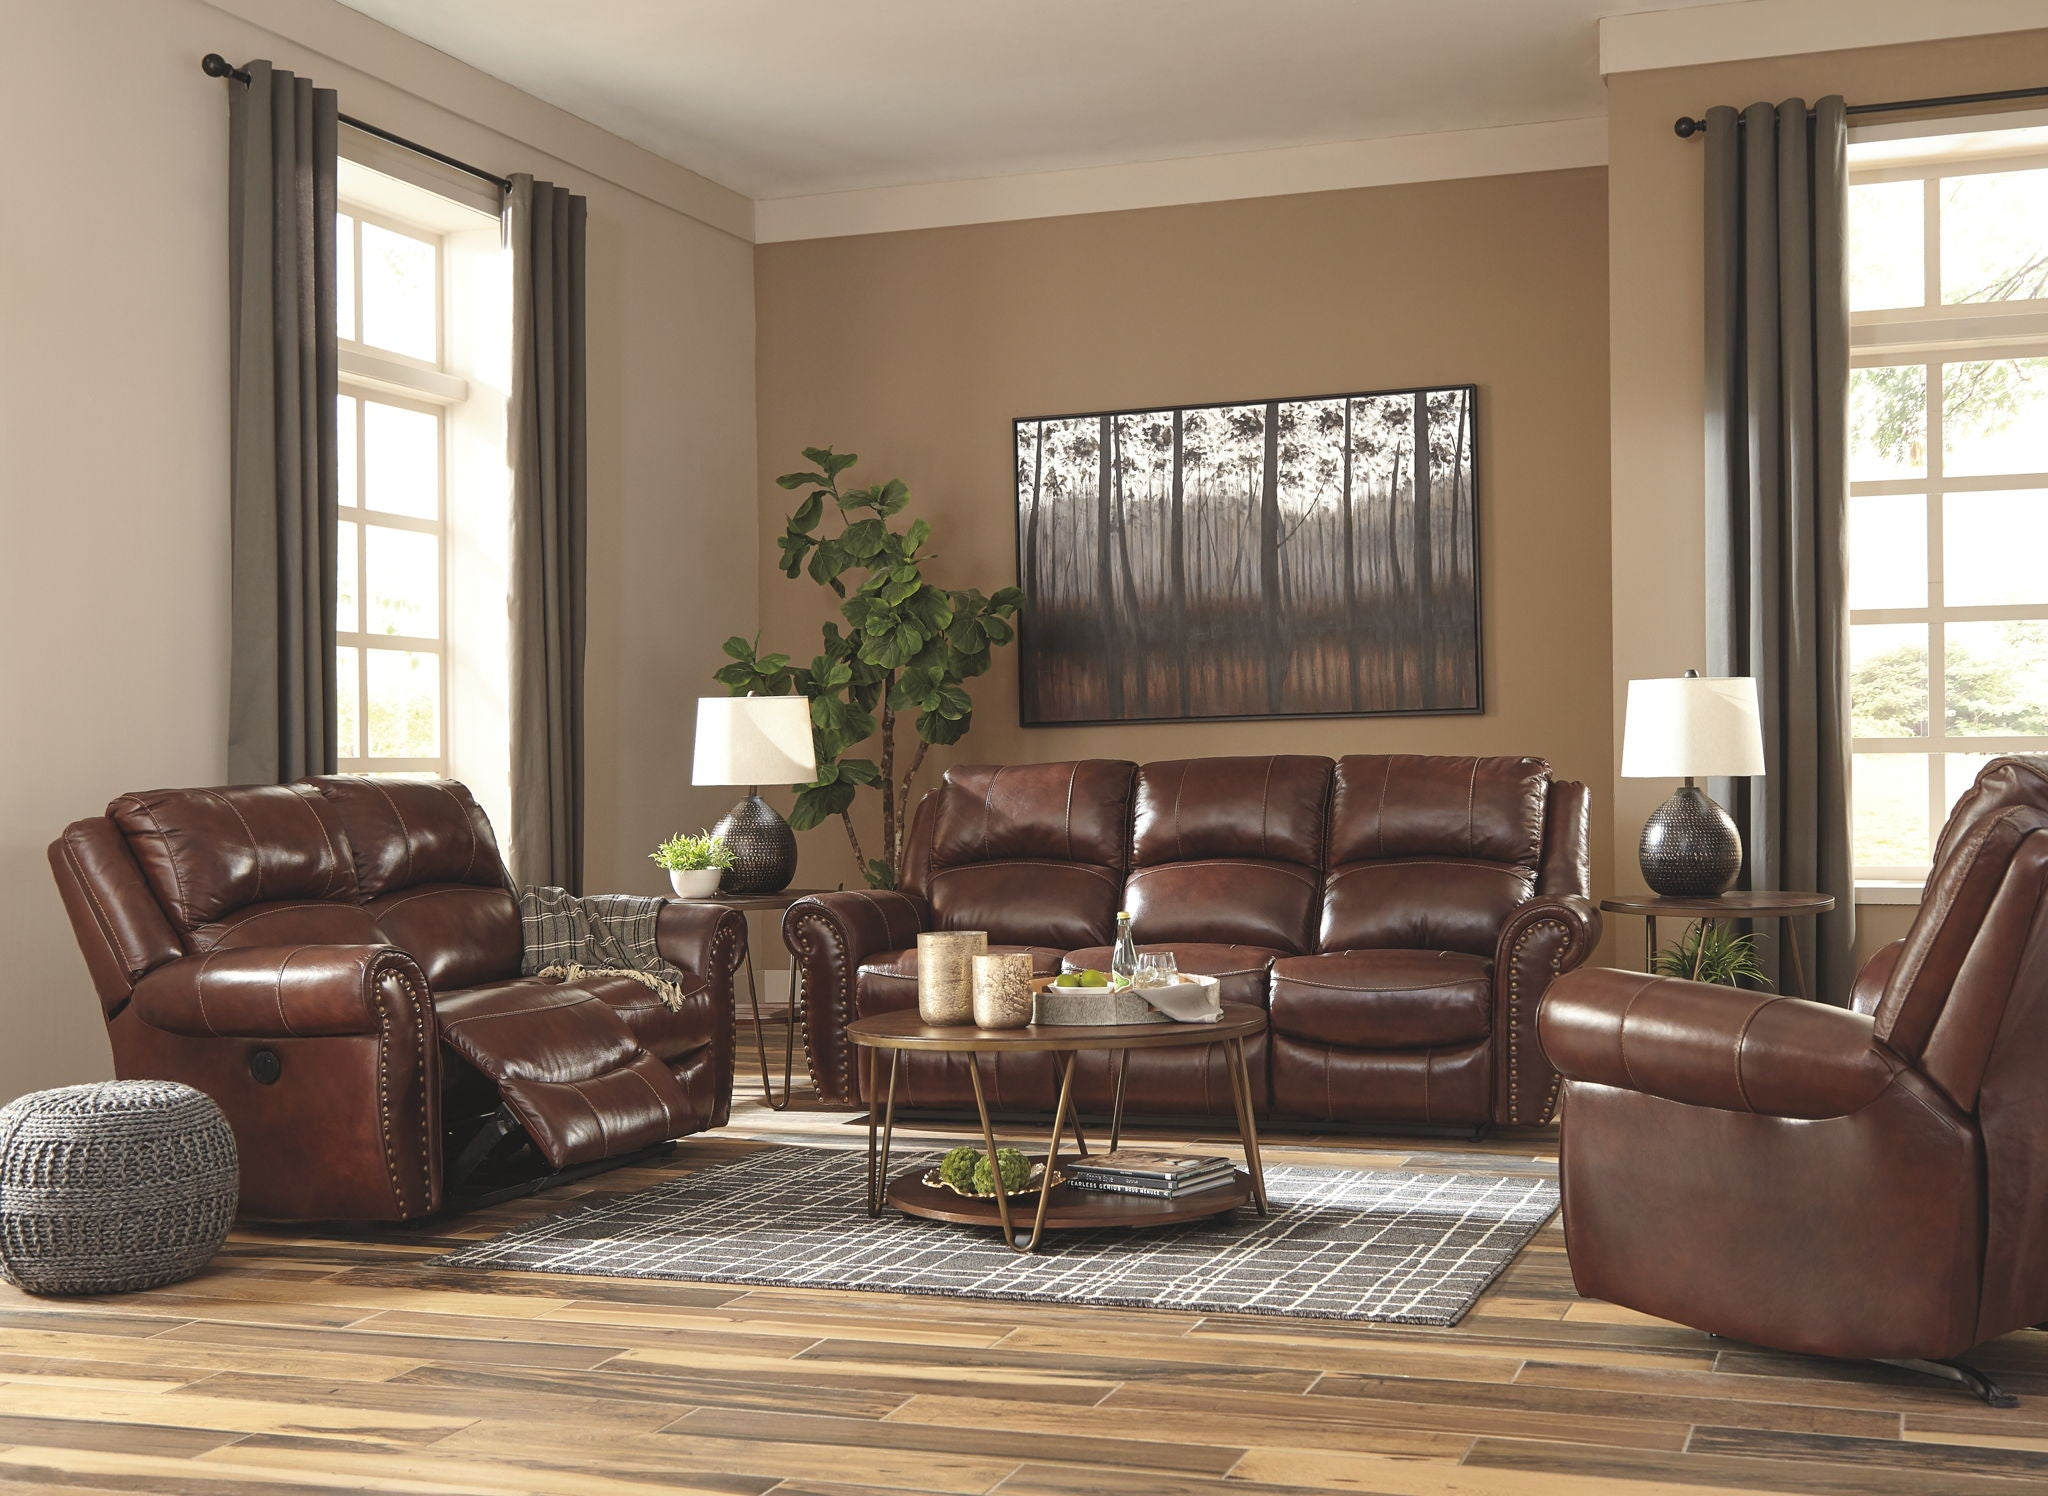 Bingen Recliner | Calgary's Furniture Store